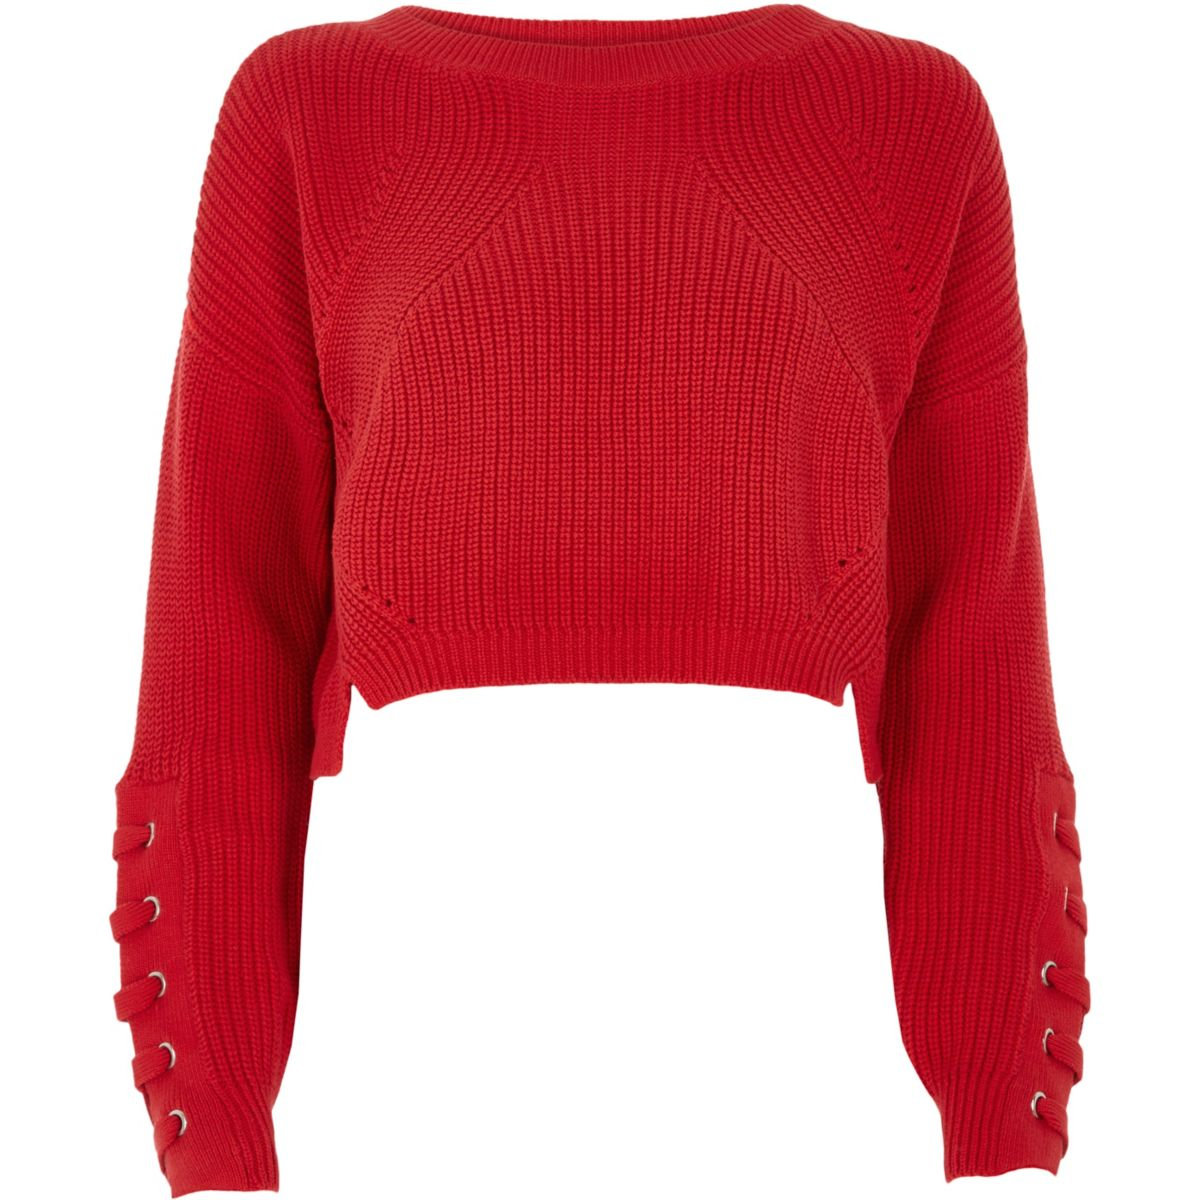 Red lace-up eyelet cropped sweater - Sweaters - Knitwear - women